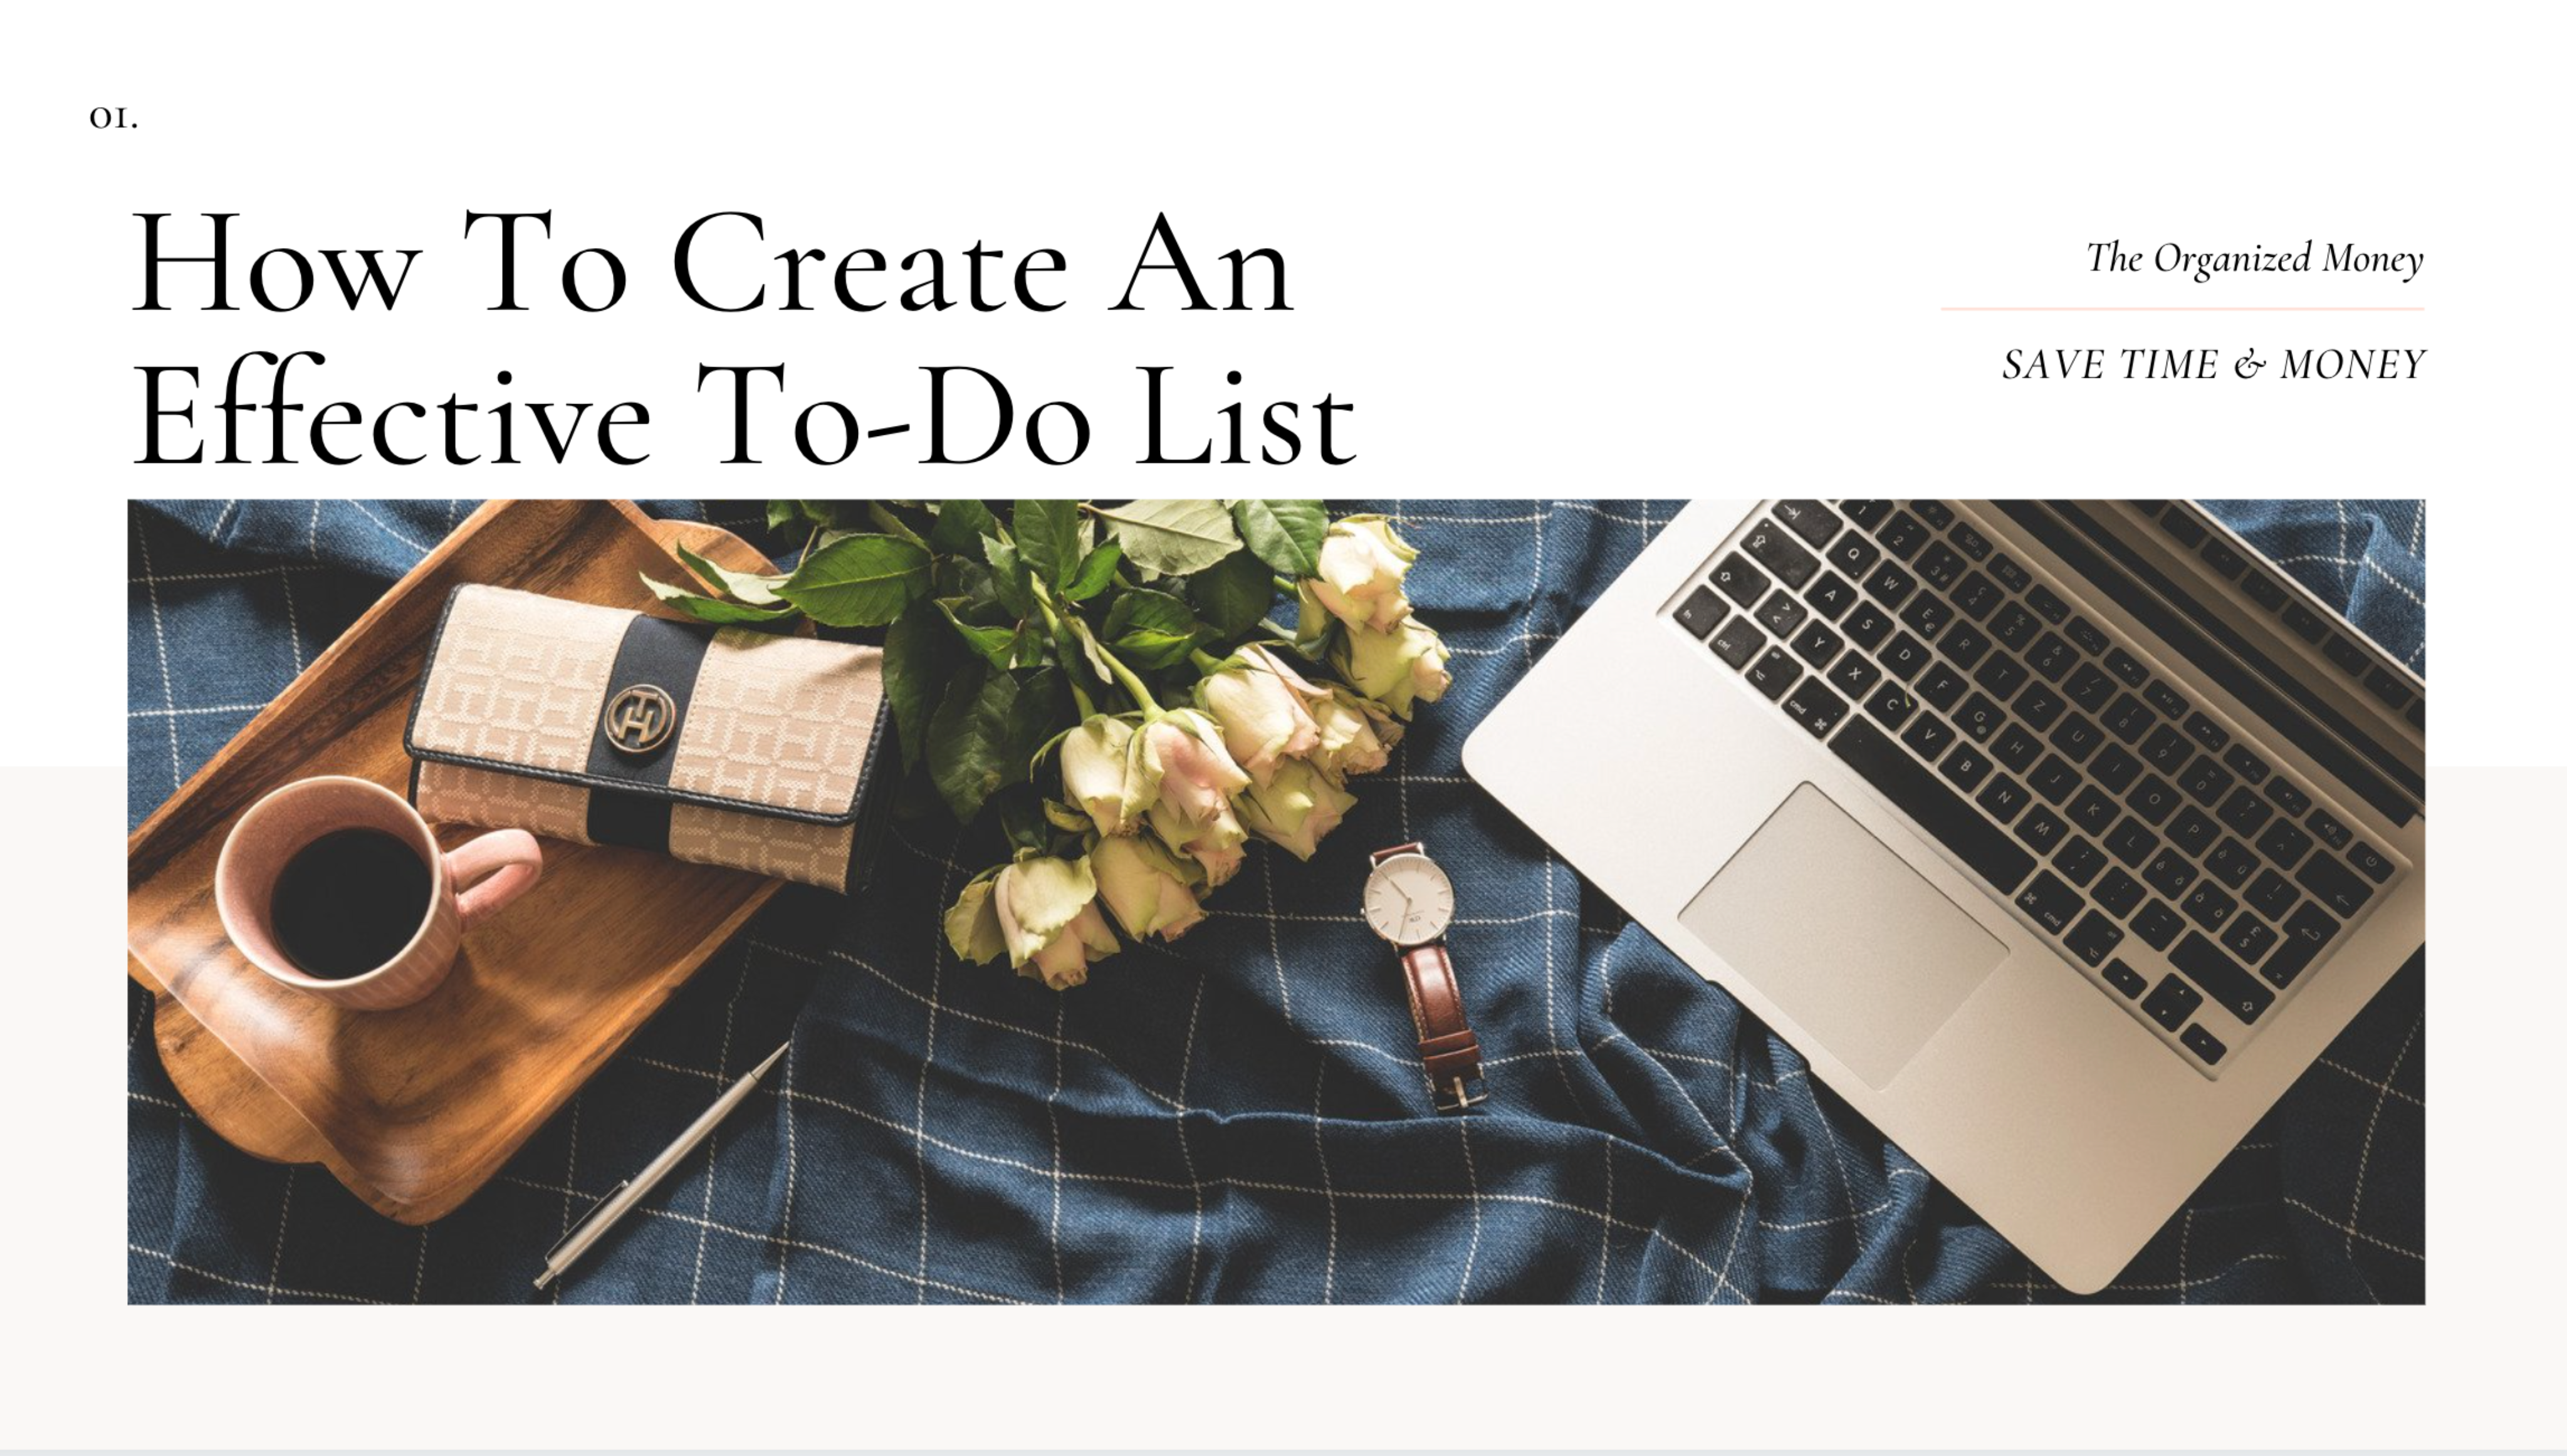 How To Create An Effective To-Do List